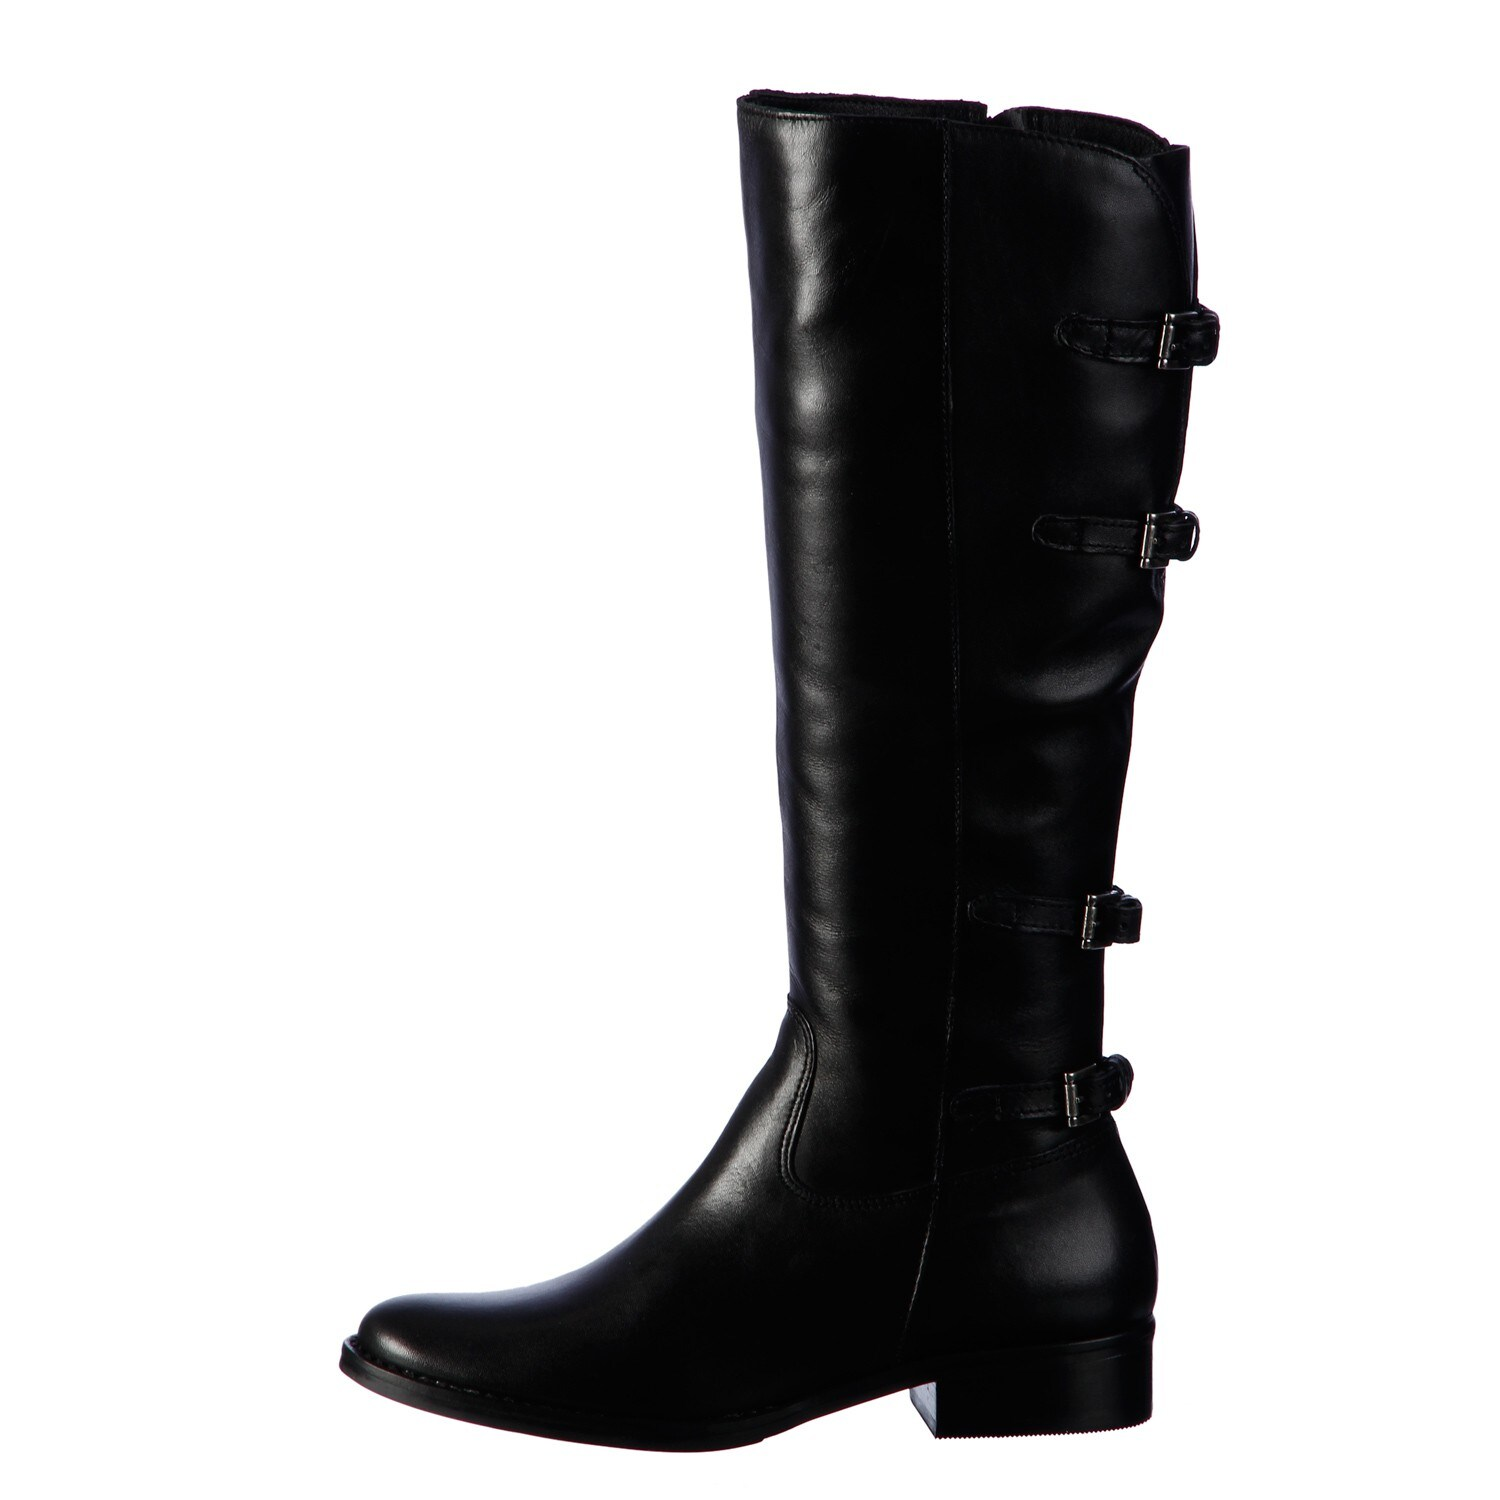 45335a9e1 Shop Matisse Women's 'Becky' Leather Boots FINAL SALE - Free Shipping Today  - Overstock - 6356687